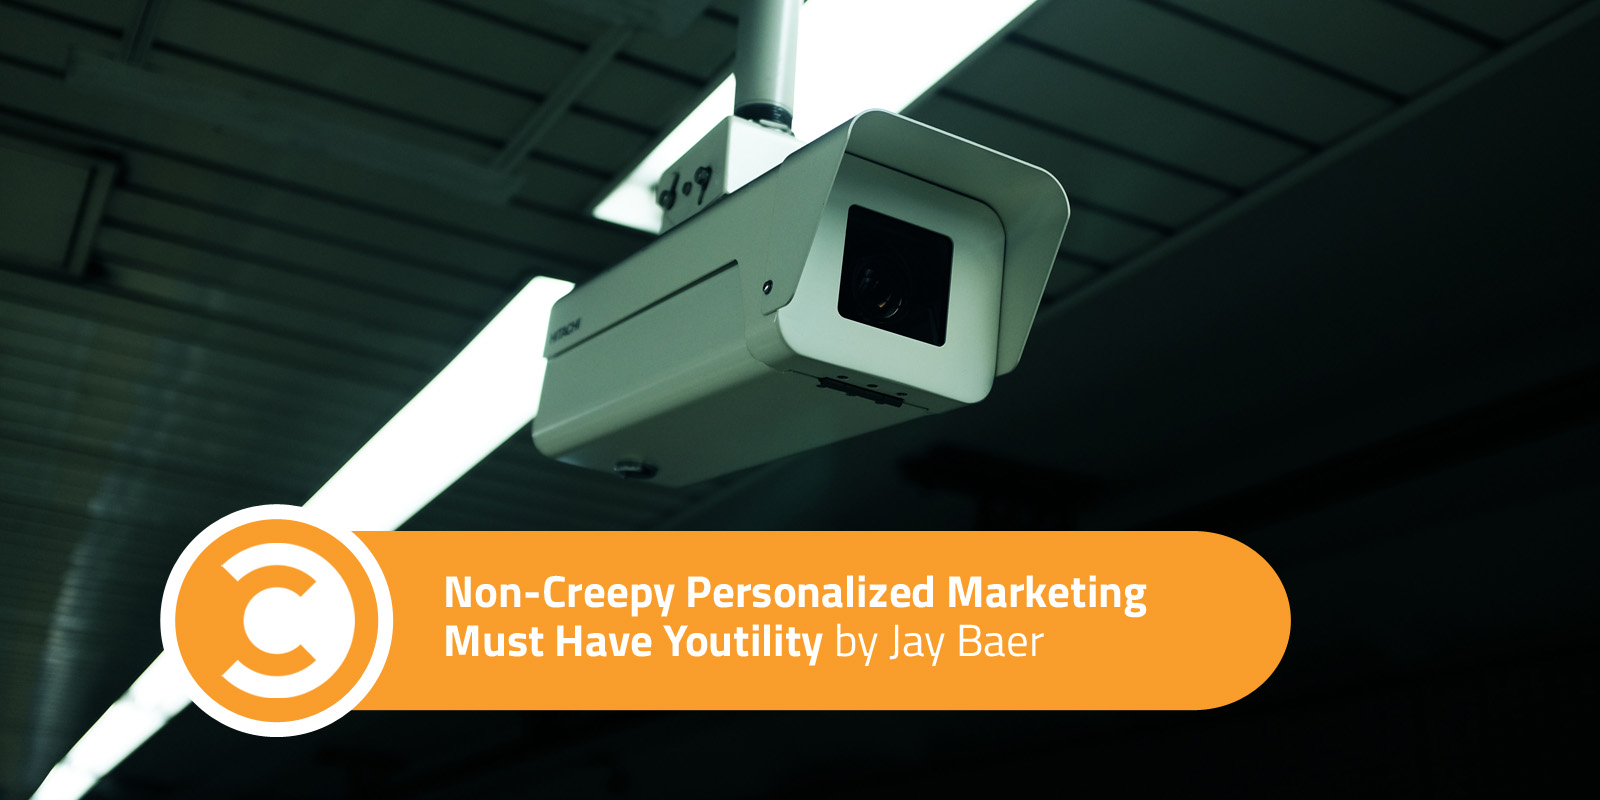 Non-Creepy Personalized Marketing Must Have Youtility